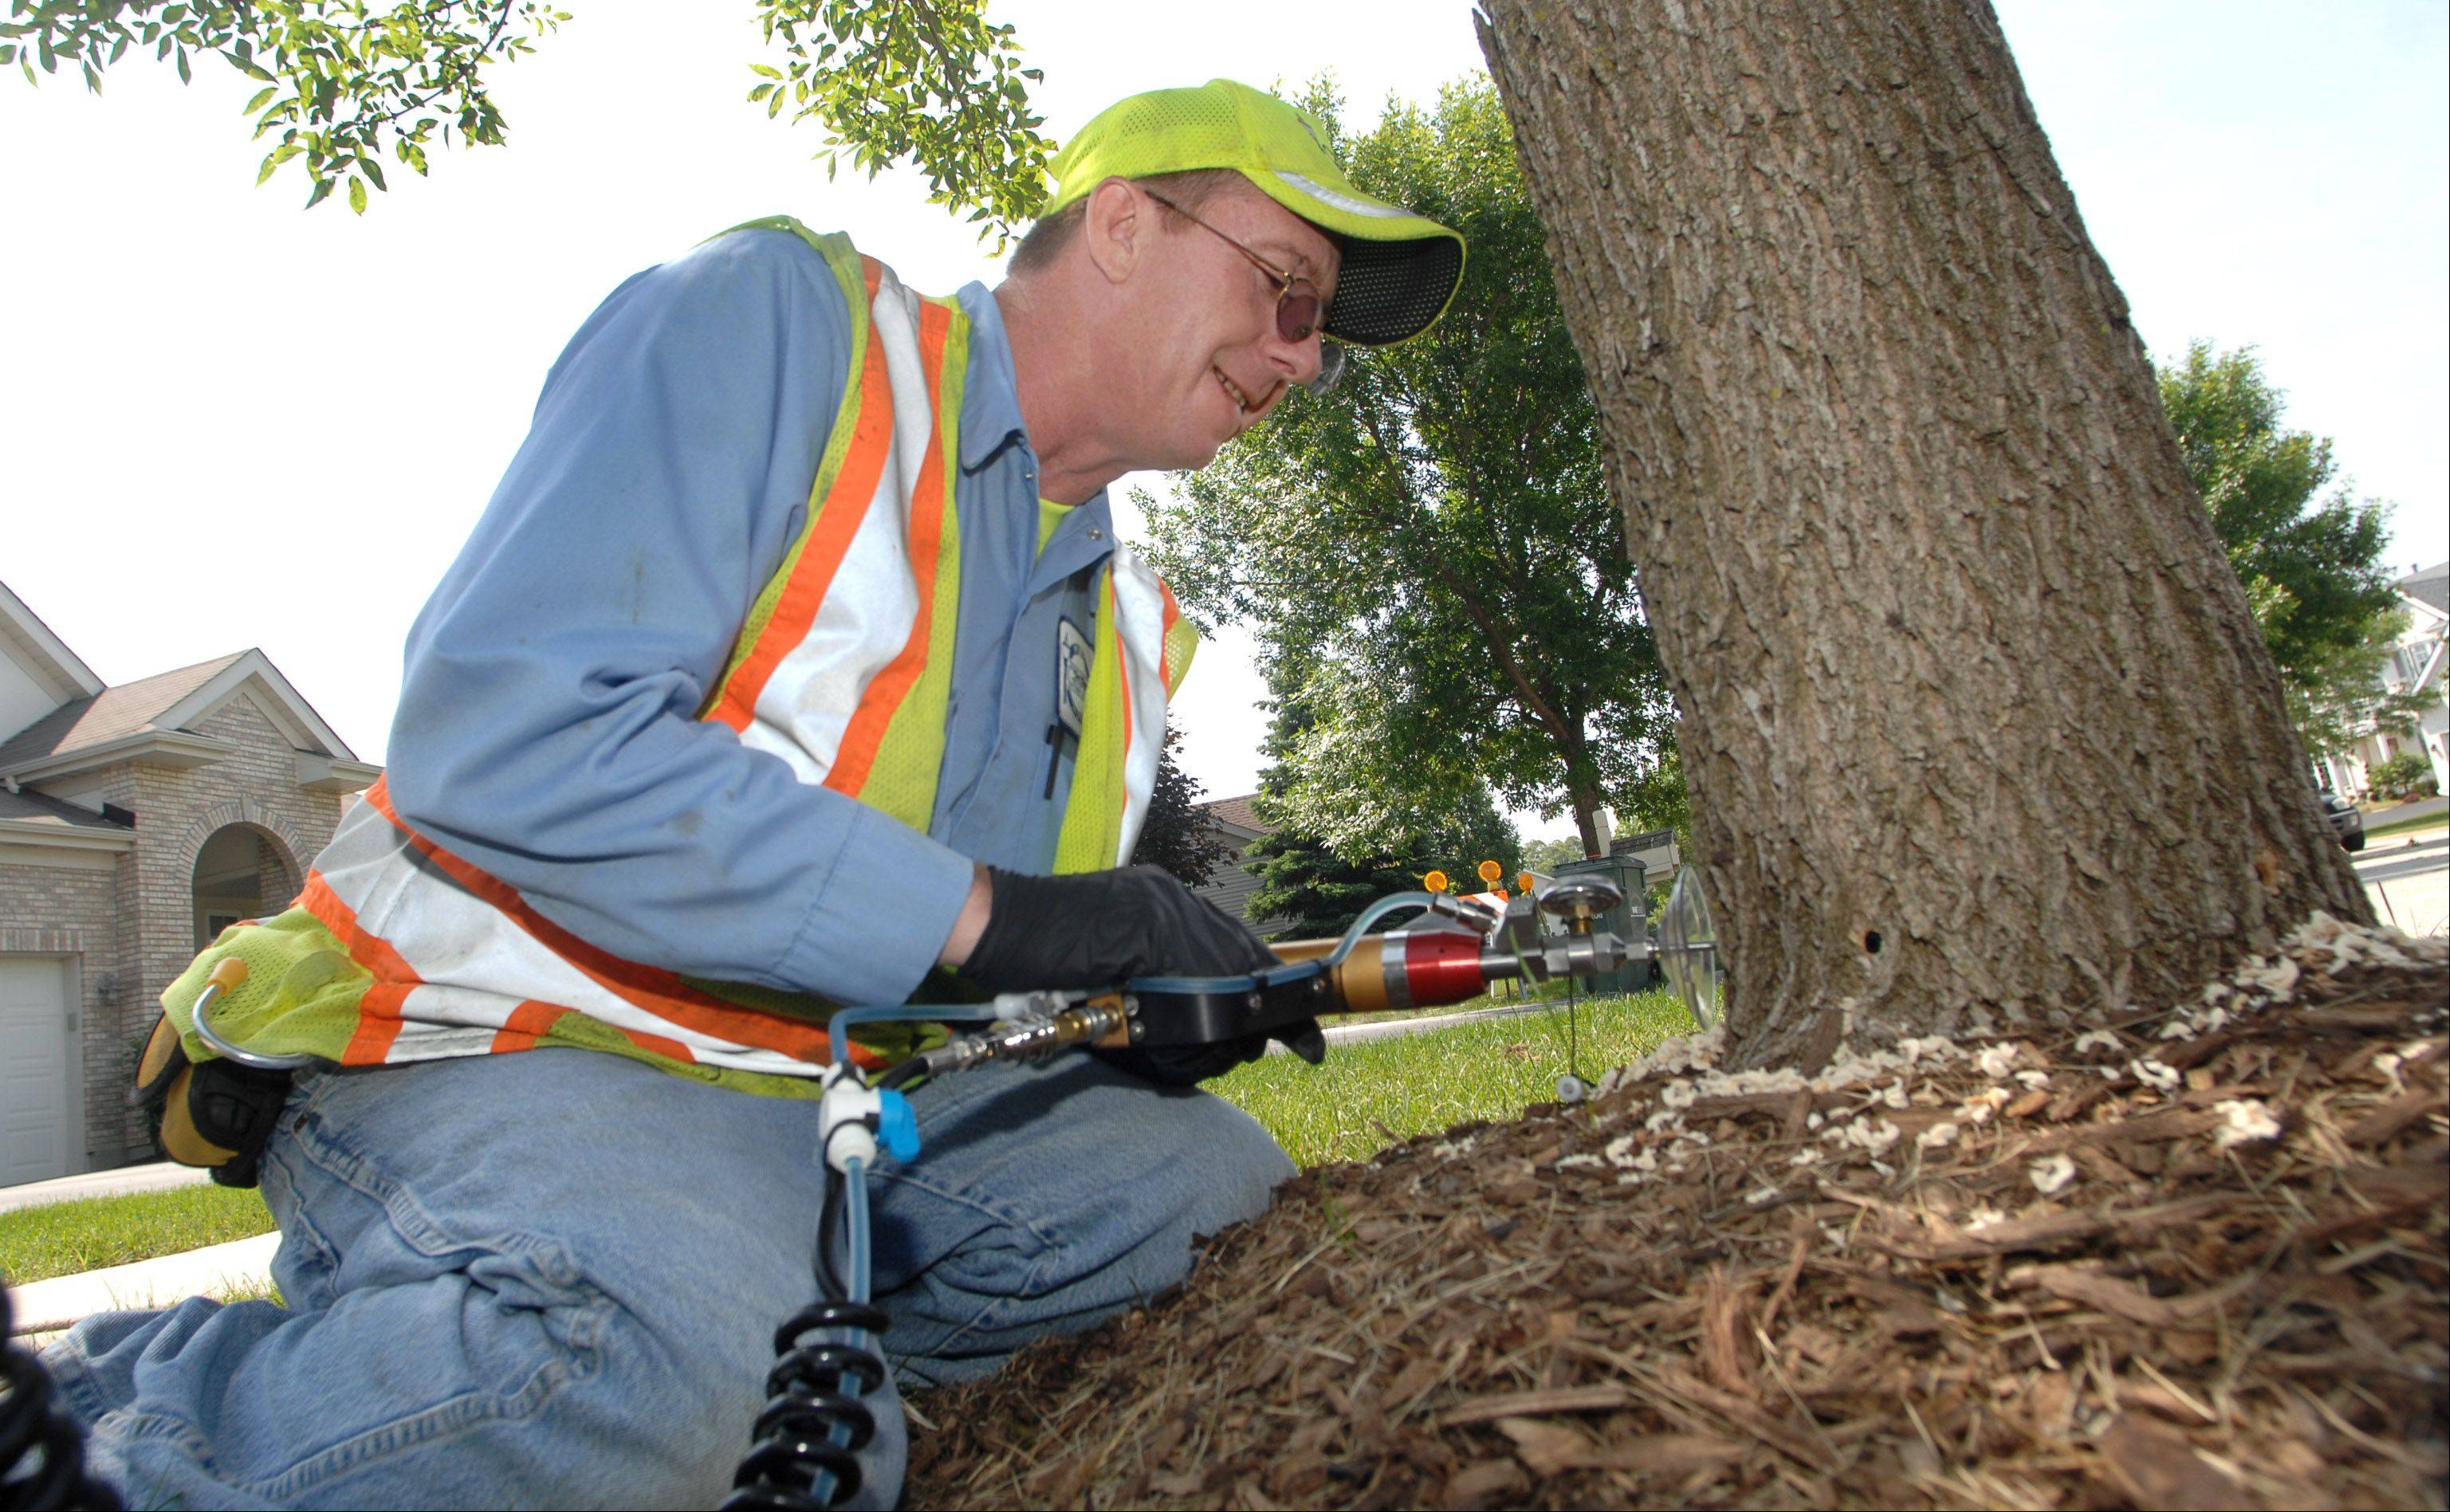 Gurnee Public Works employee Chris Chamberlain injects chemicals into an ash tree Friday morning on Bellview Court in Gurnee.